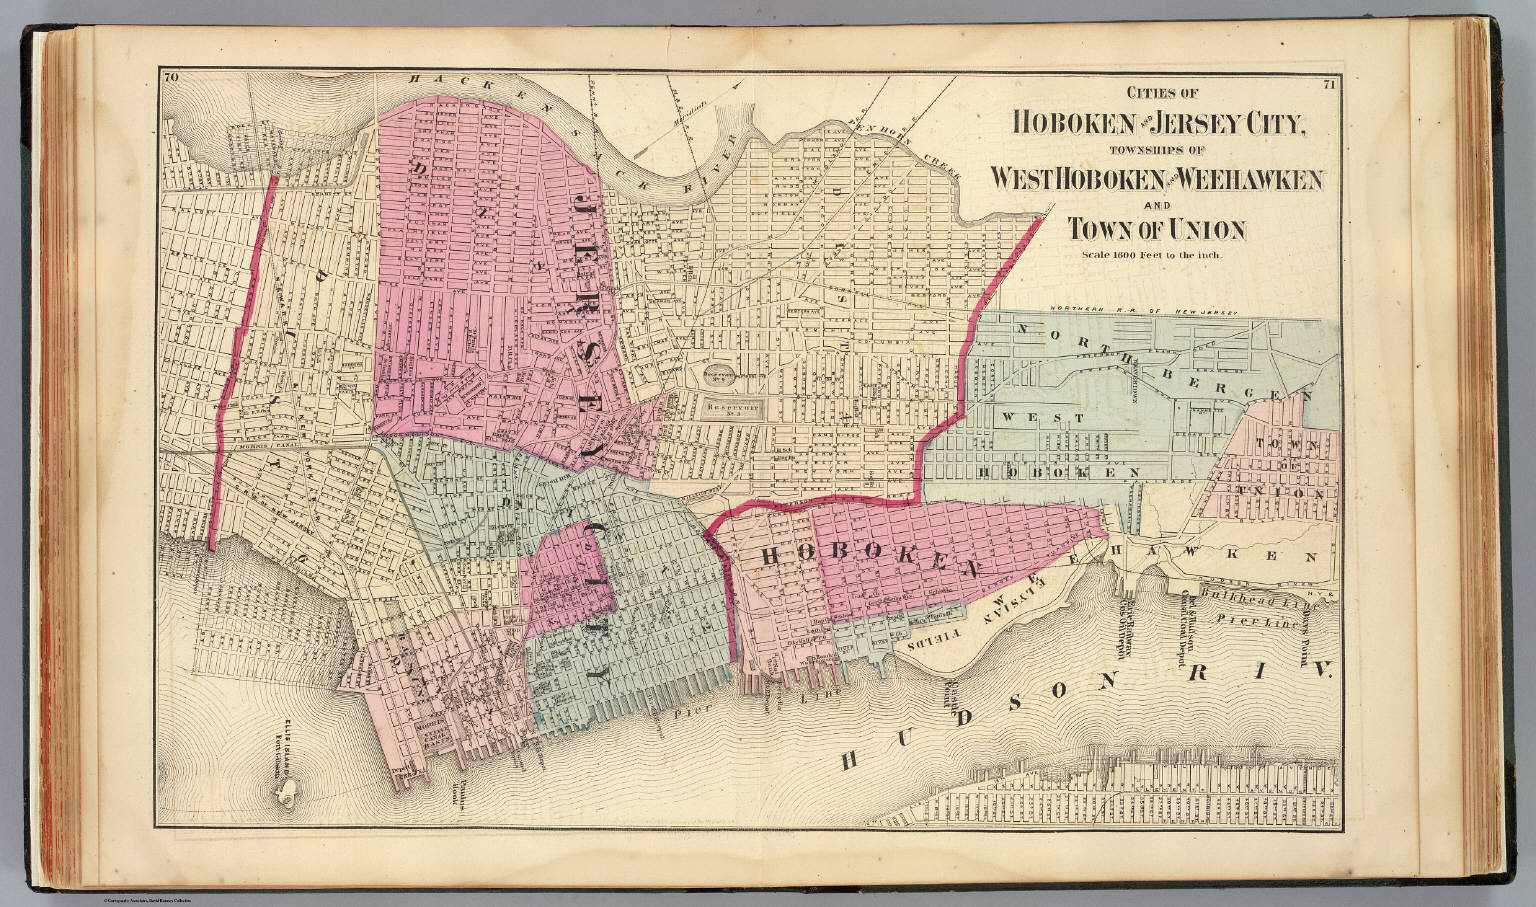 Hoboken Jersey City David Rumsey Historical Map Collection - Map of jersey city